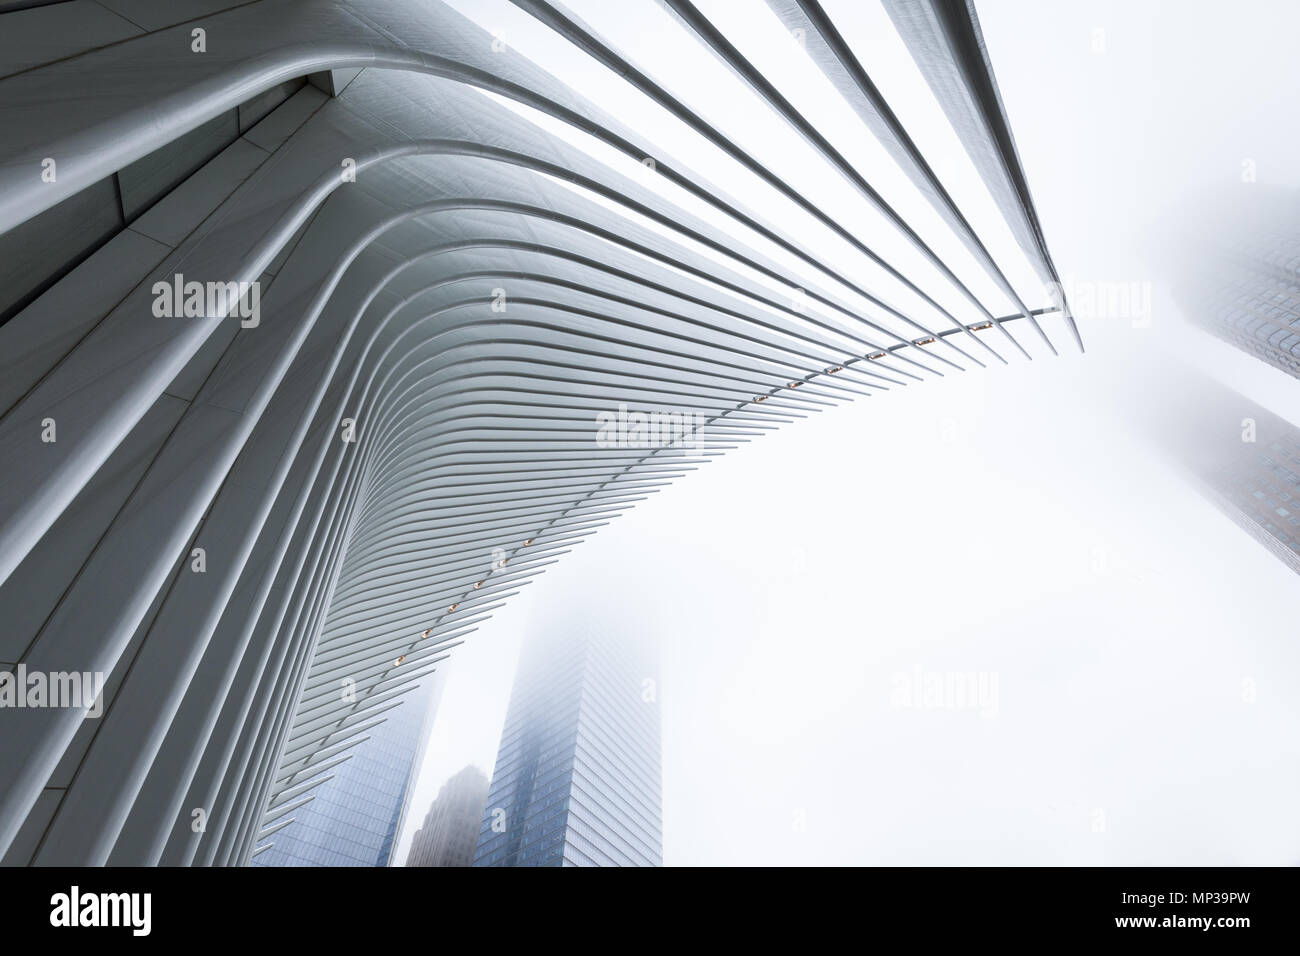 L'Oculus bâtiment dans le brouillard, Lower Manhattan, New York City, USA. Photo Stock